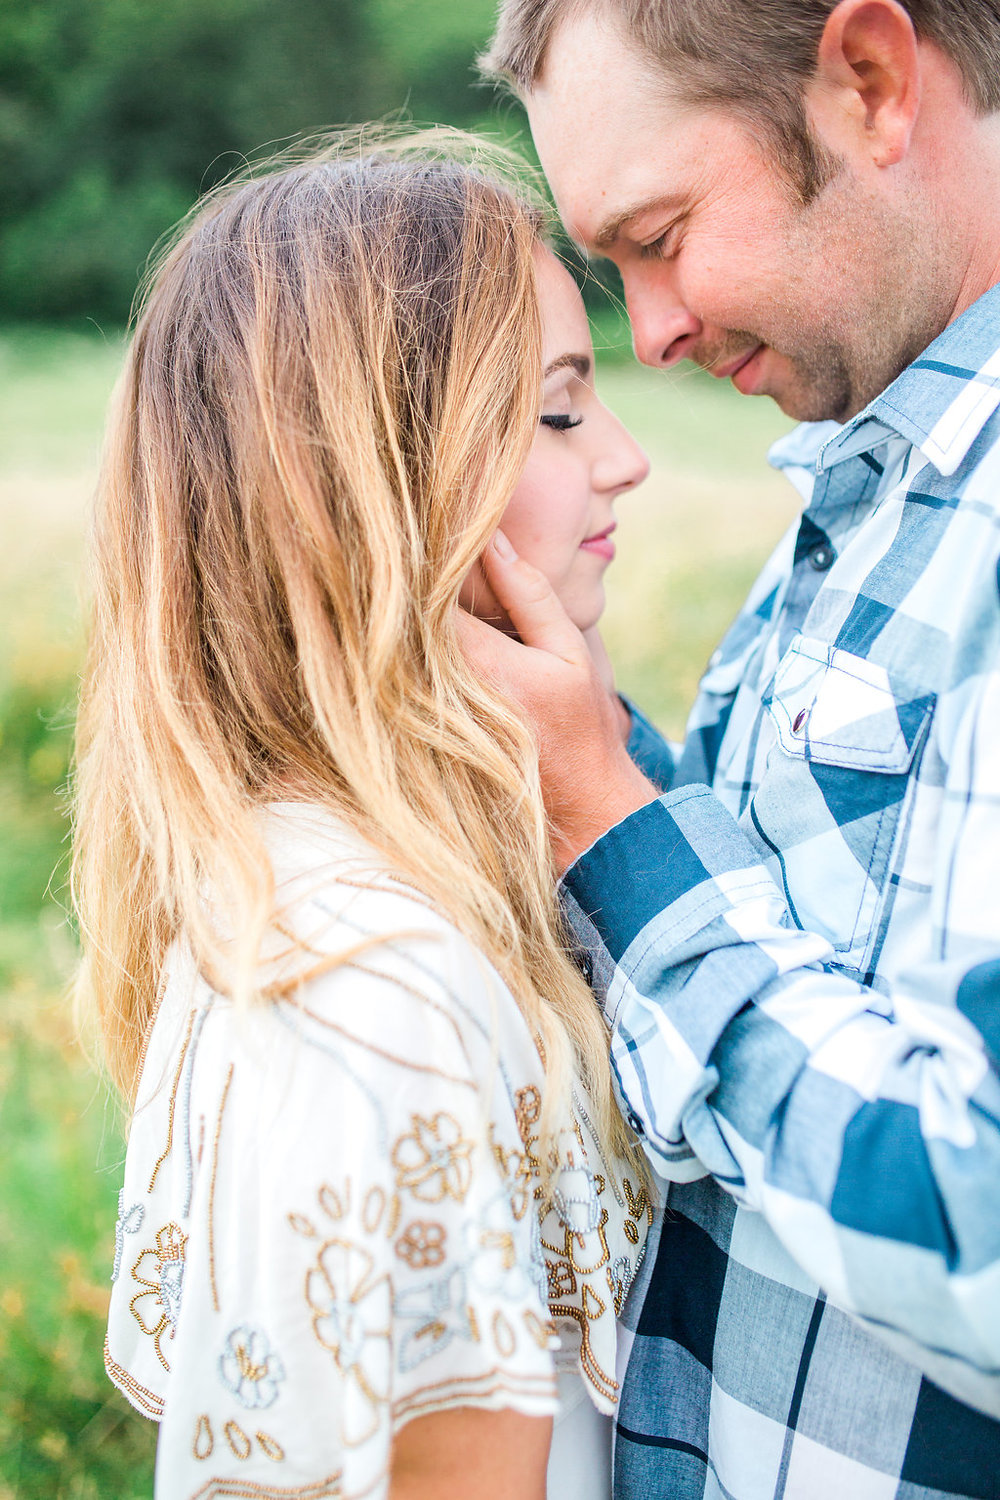 Beautiful outdoor engagement session | What to wear | Photo Inspiration | Engagement session | Portrait | White | Detail Shots | Mastin Labs | Engaged | Fuji 400 | Beautiful Couple | Couple in Love | Beautiful posing and embrace